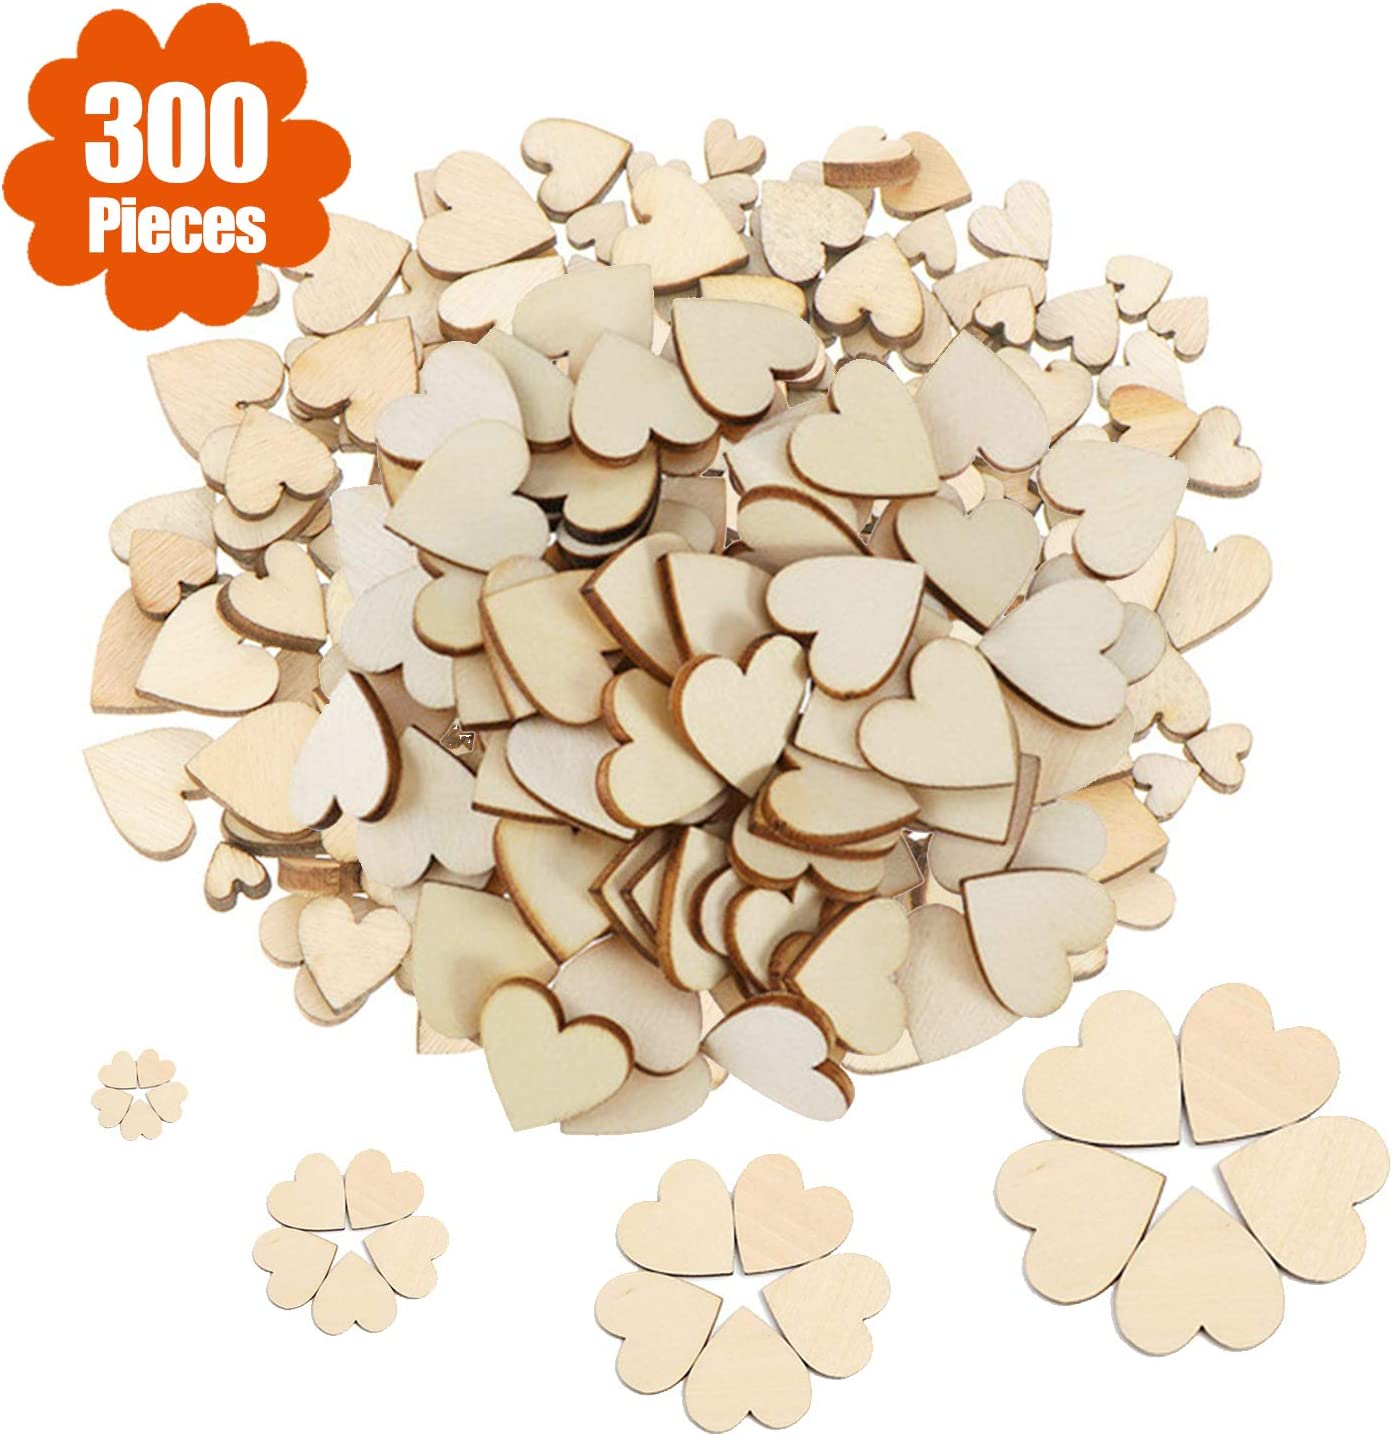 4cm Wooden MDF Hearts Shapes Craft Embellishments Decoration Christmas Party